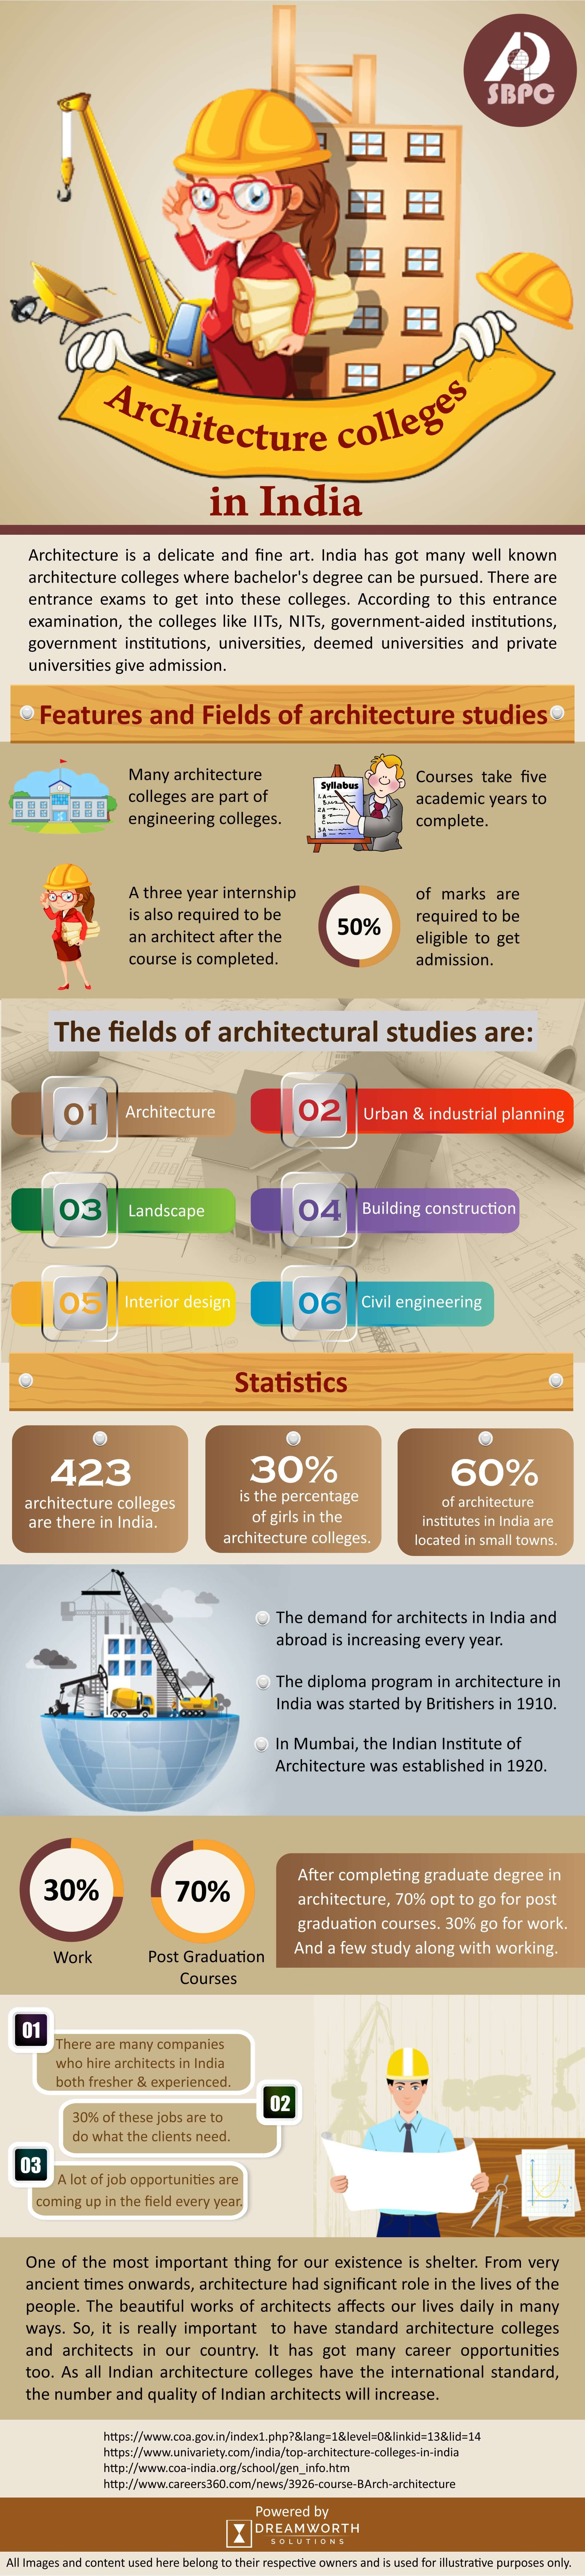 salient features of Architecture College in India through digital marketing services